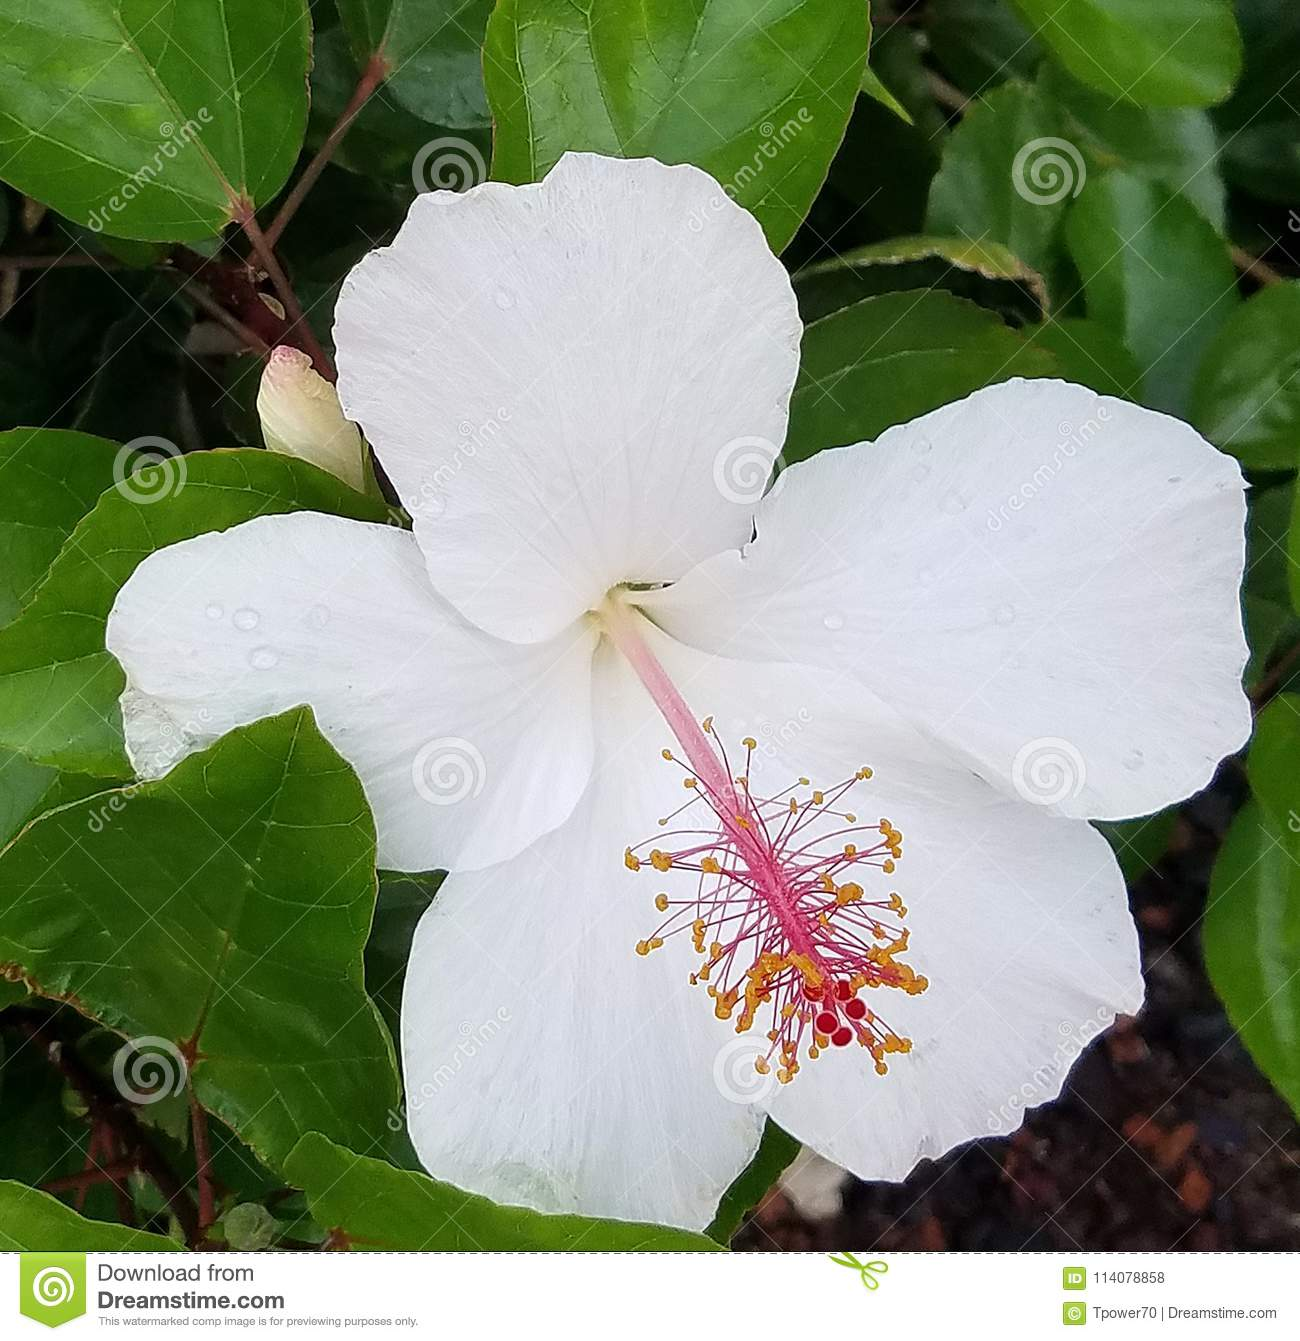 White Hibiscus Flower With Dew Drops On Petals Stock Photo Image